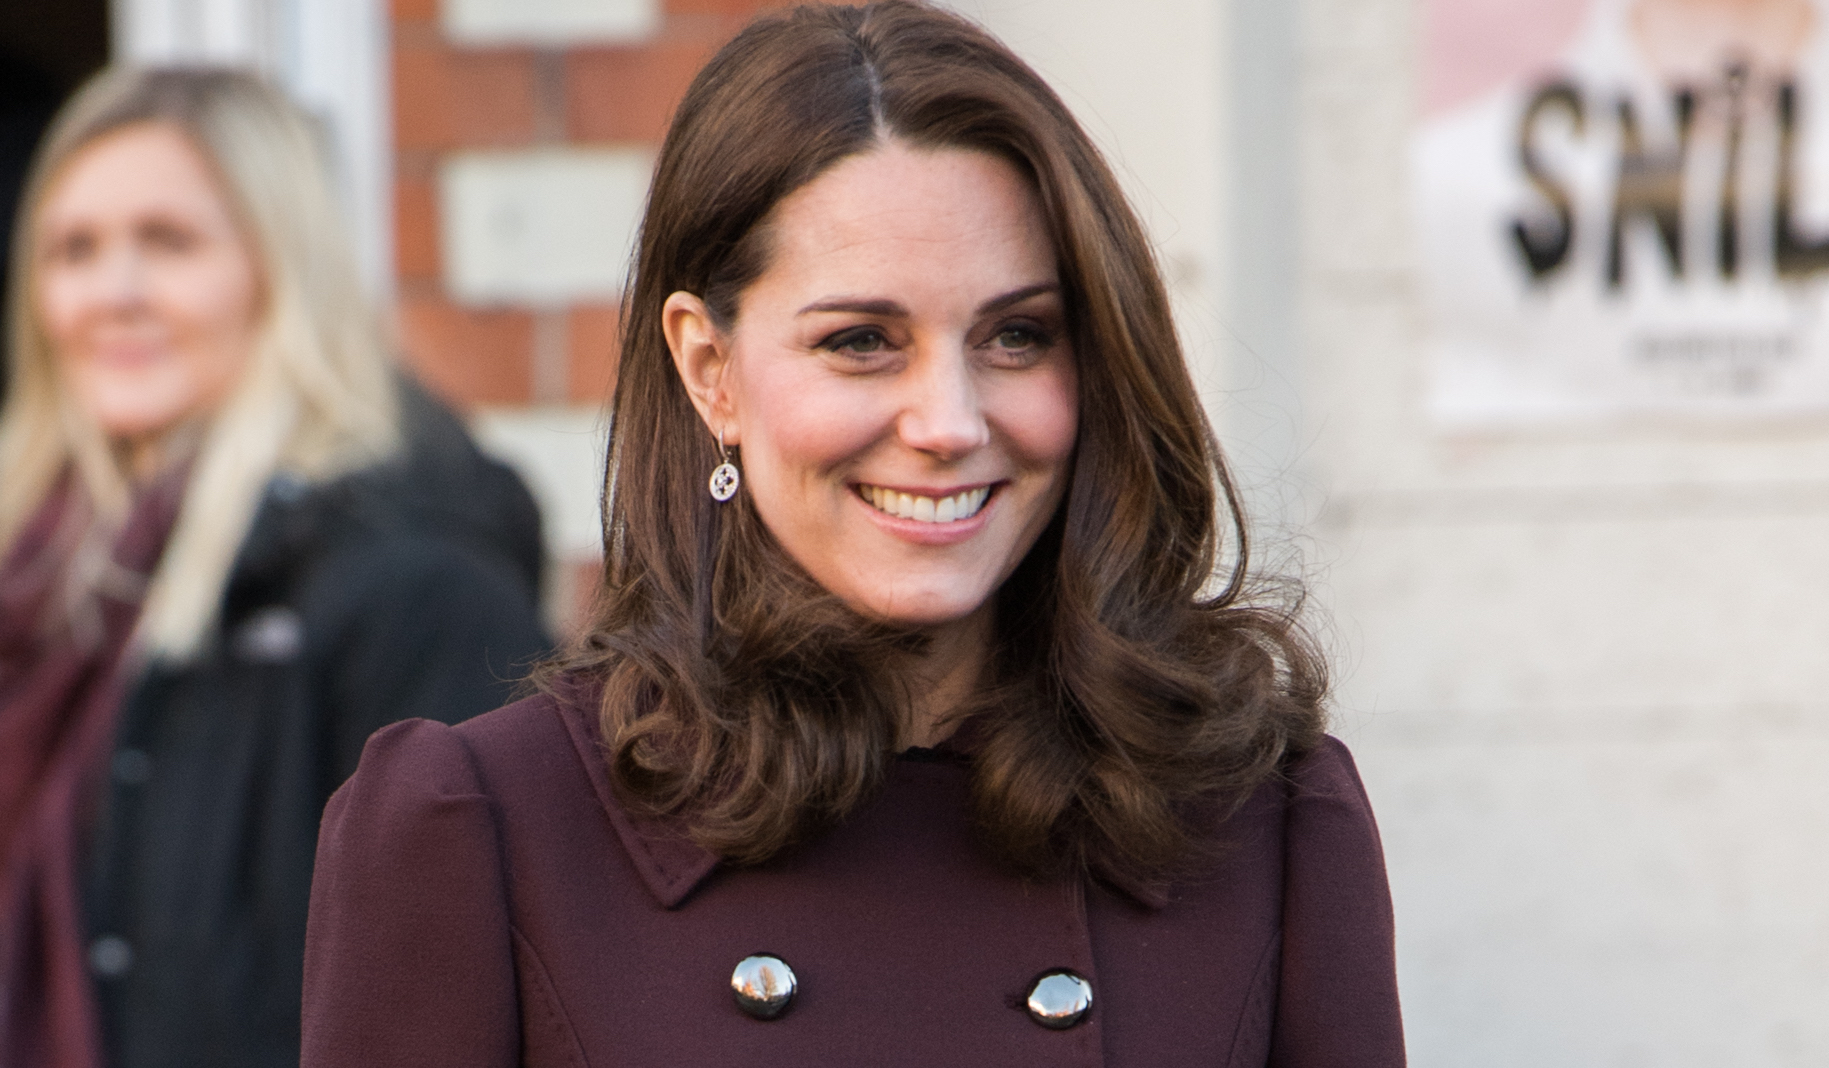 Kate Middleton's Home Birth: The Royal Will Deliver Twins at the Palace